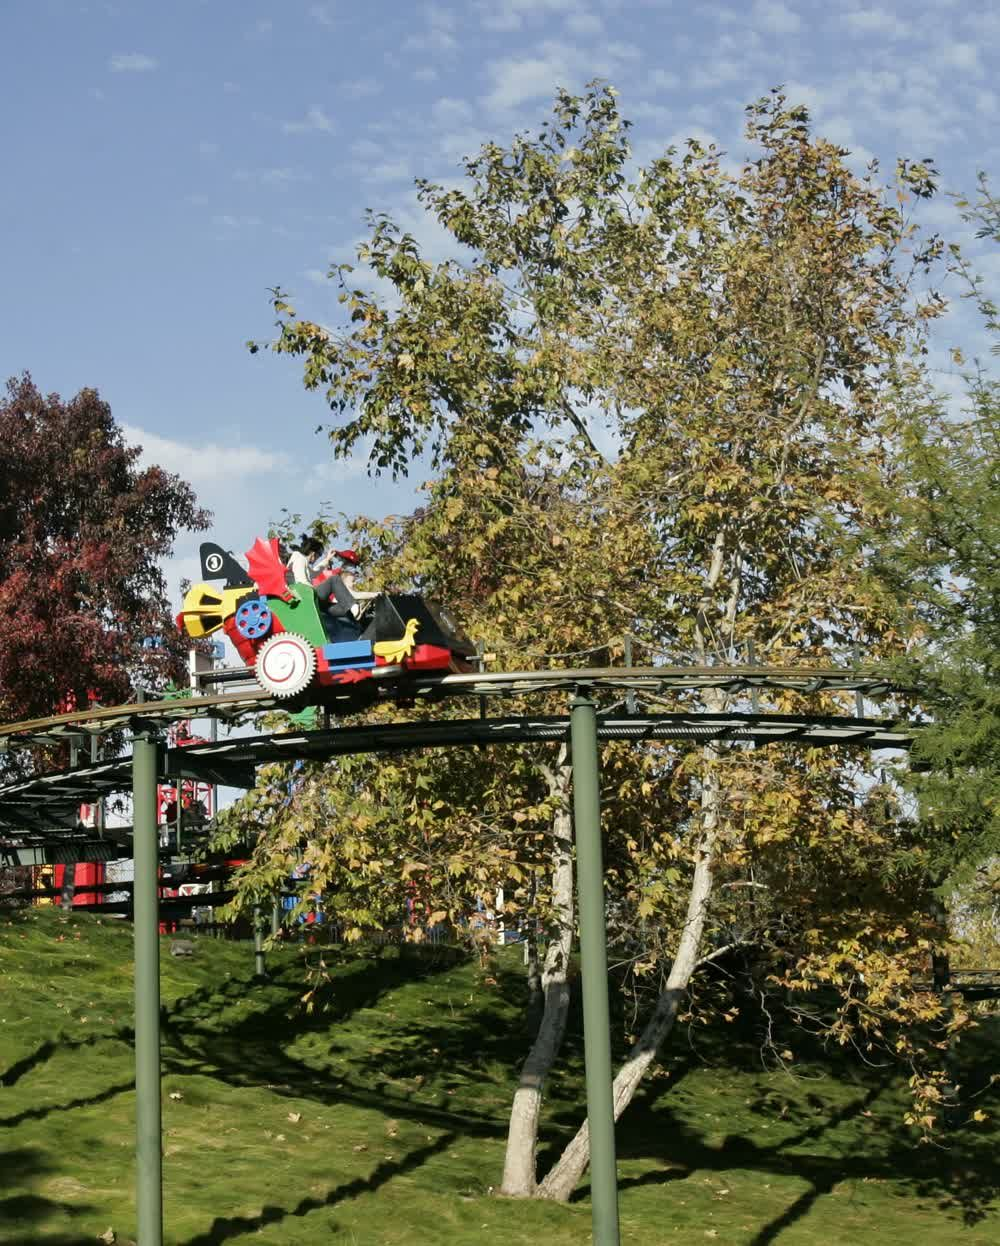 title: Fun Roller Coaster Ride at Legoland